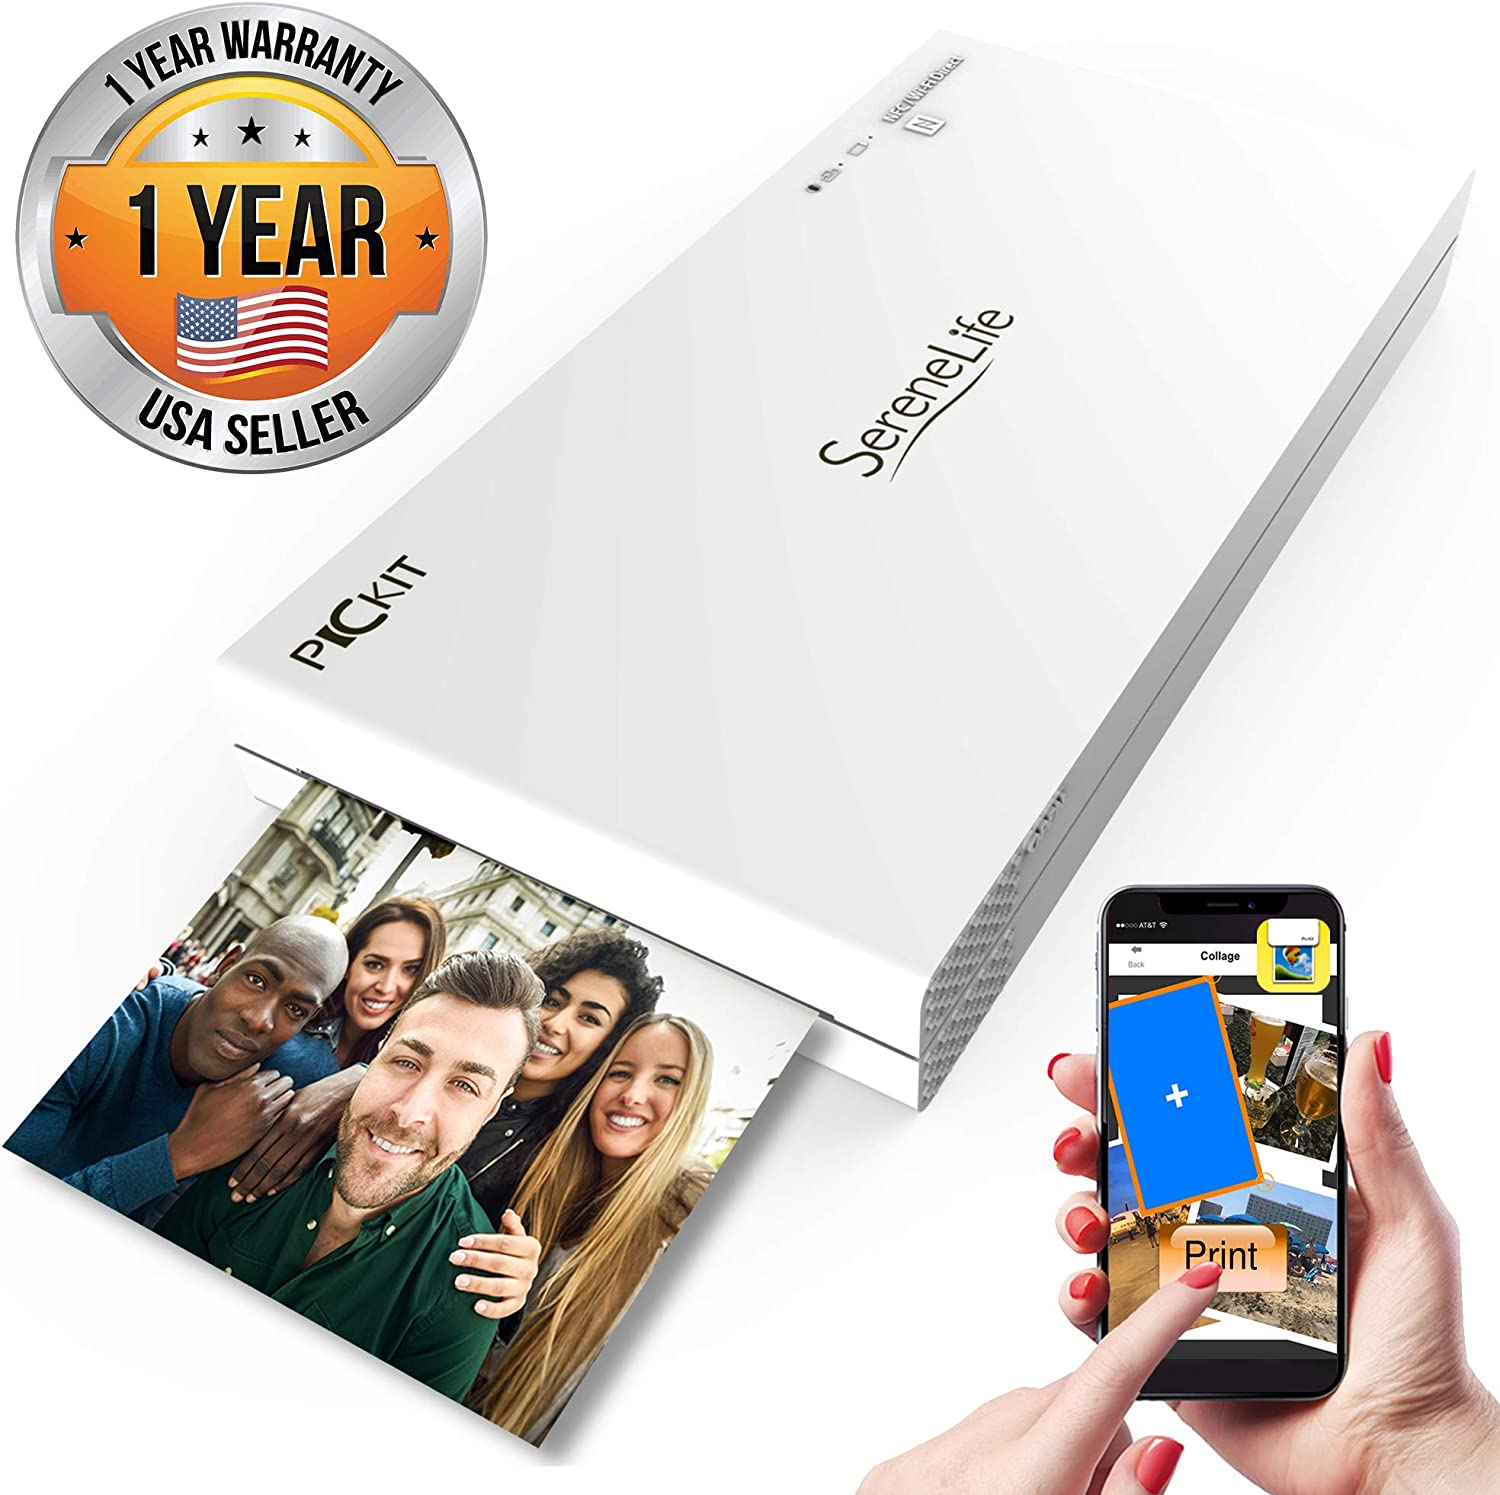 Portable Instant Mobile Photo Printer - Wireless Color Picture Printing from Apple iPhone, iPad or Android Smartphone Camera - Mini Compact Pocket Size Easy for Travel - SereneLife PICKIT20 White